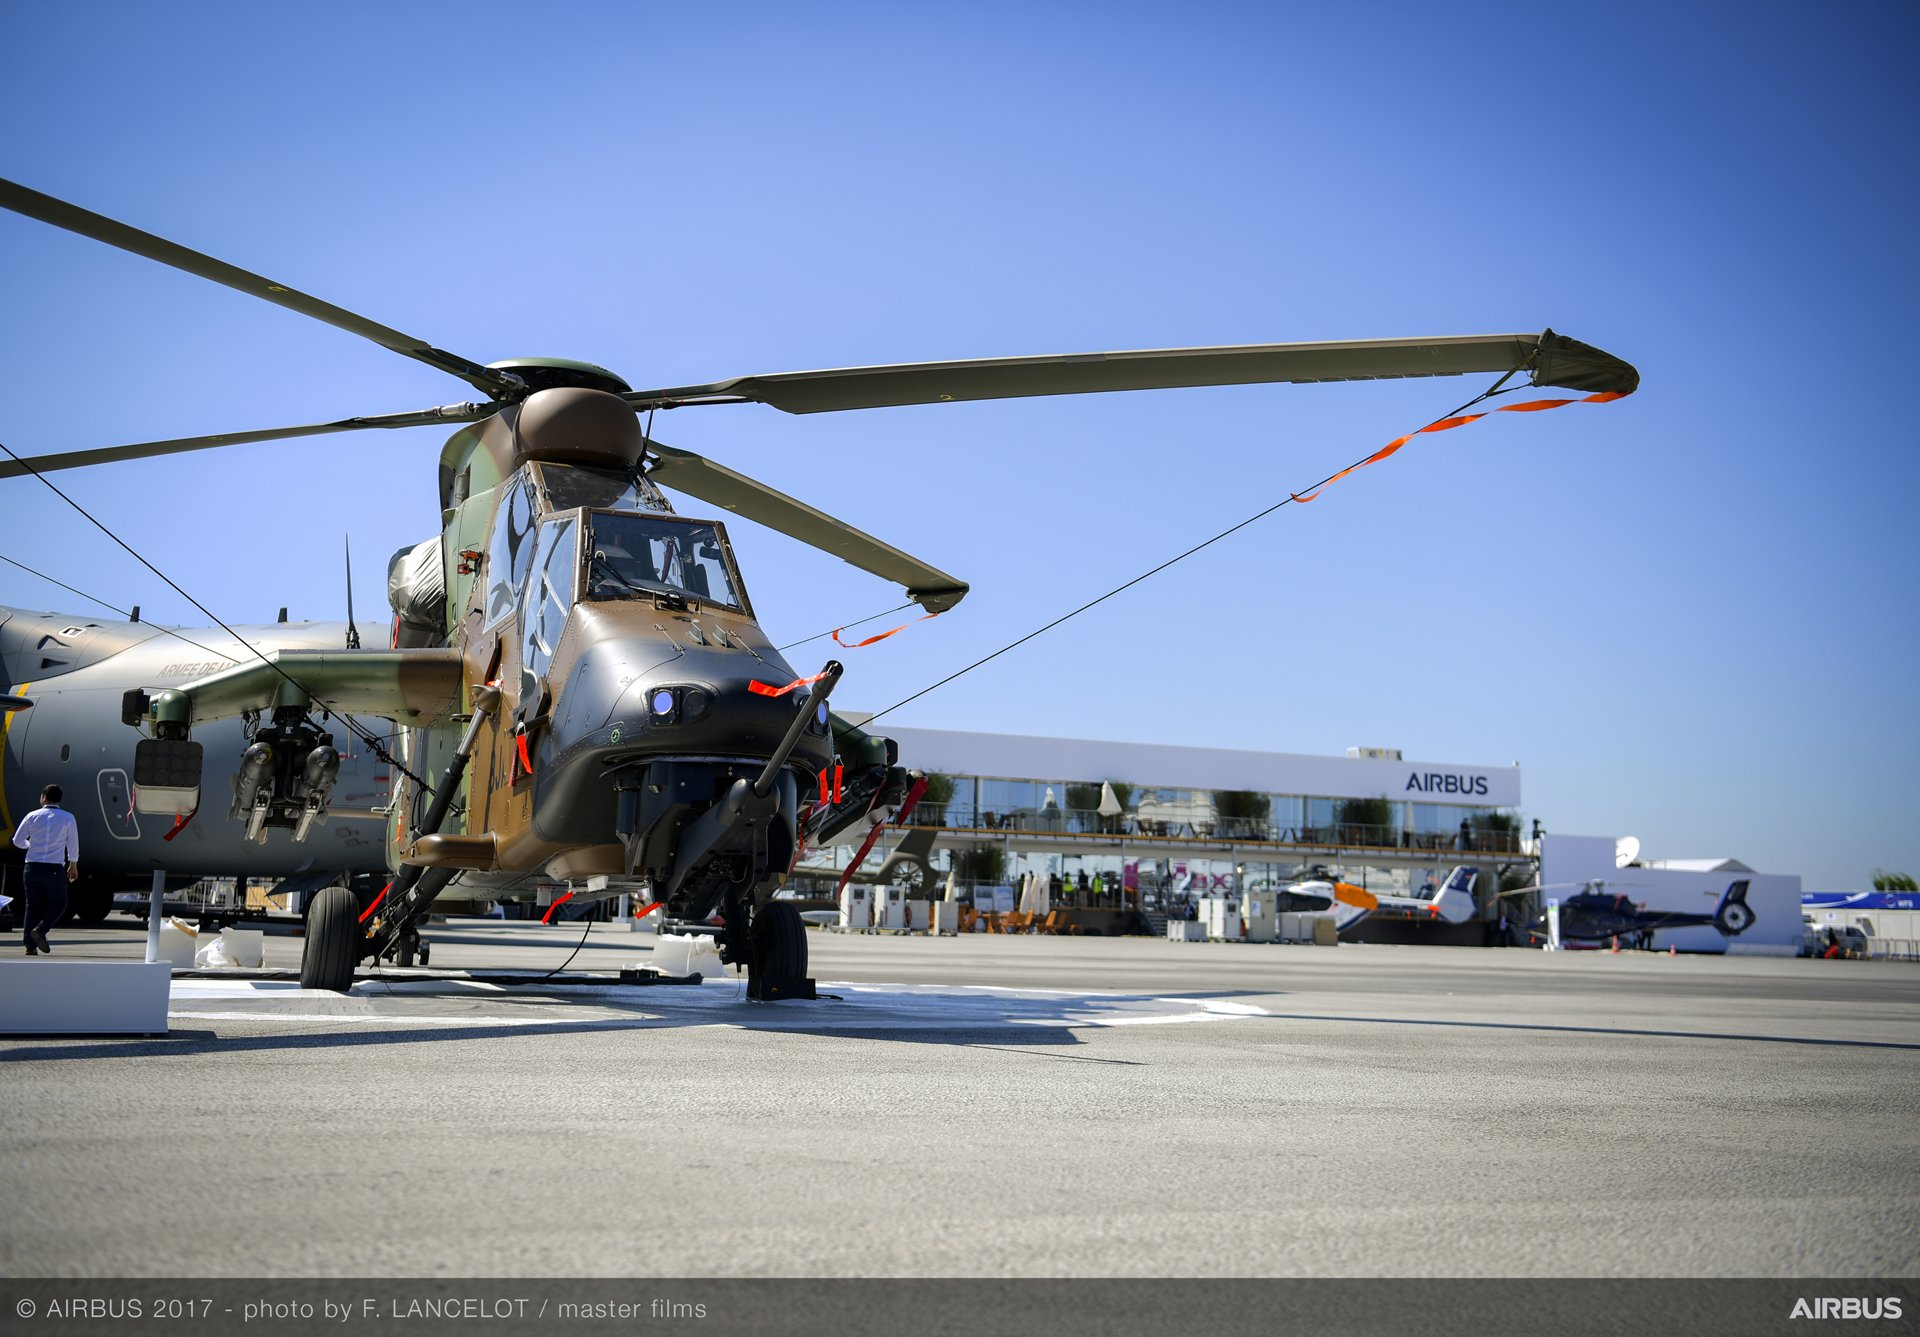 PAS 2017 19 June: Tiger helicopter at the static display